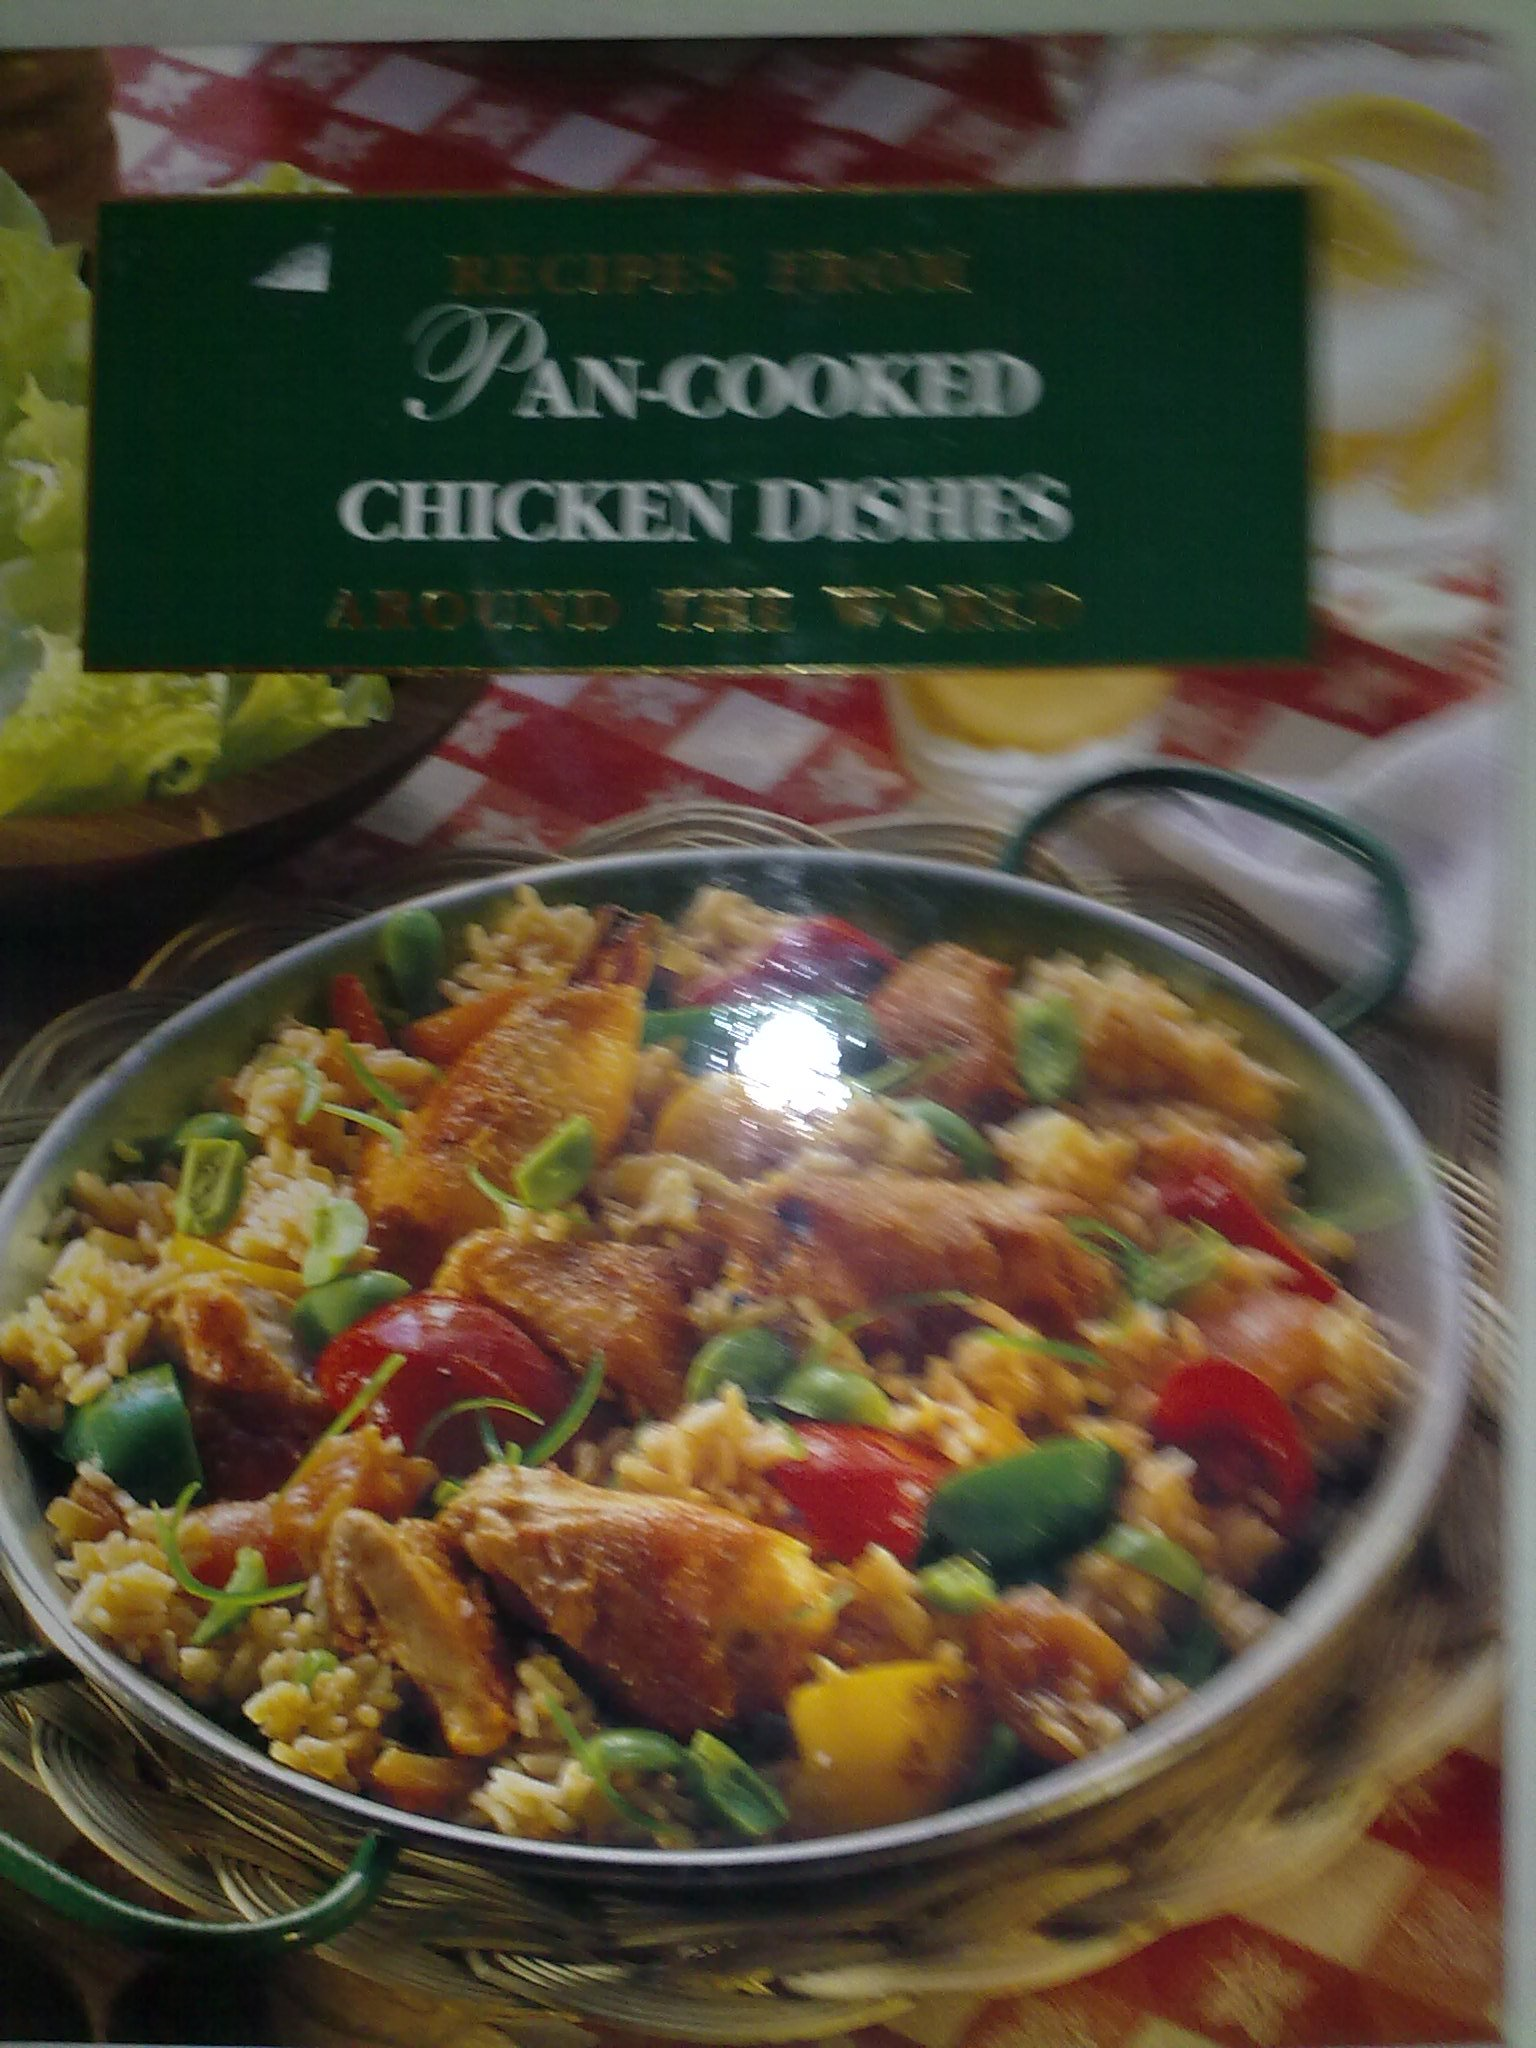 Pan cooked chicken dishes recipes from around the world amazon pan cooked chicken dishes recipes from around the world forumfinder Images